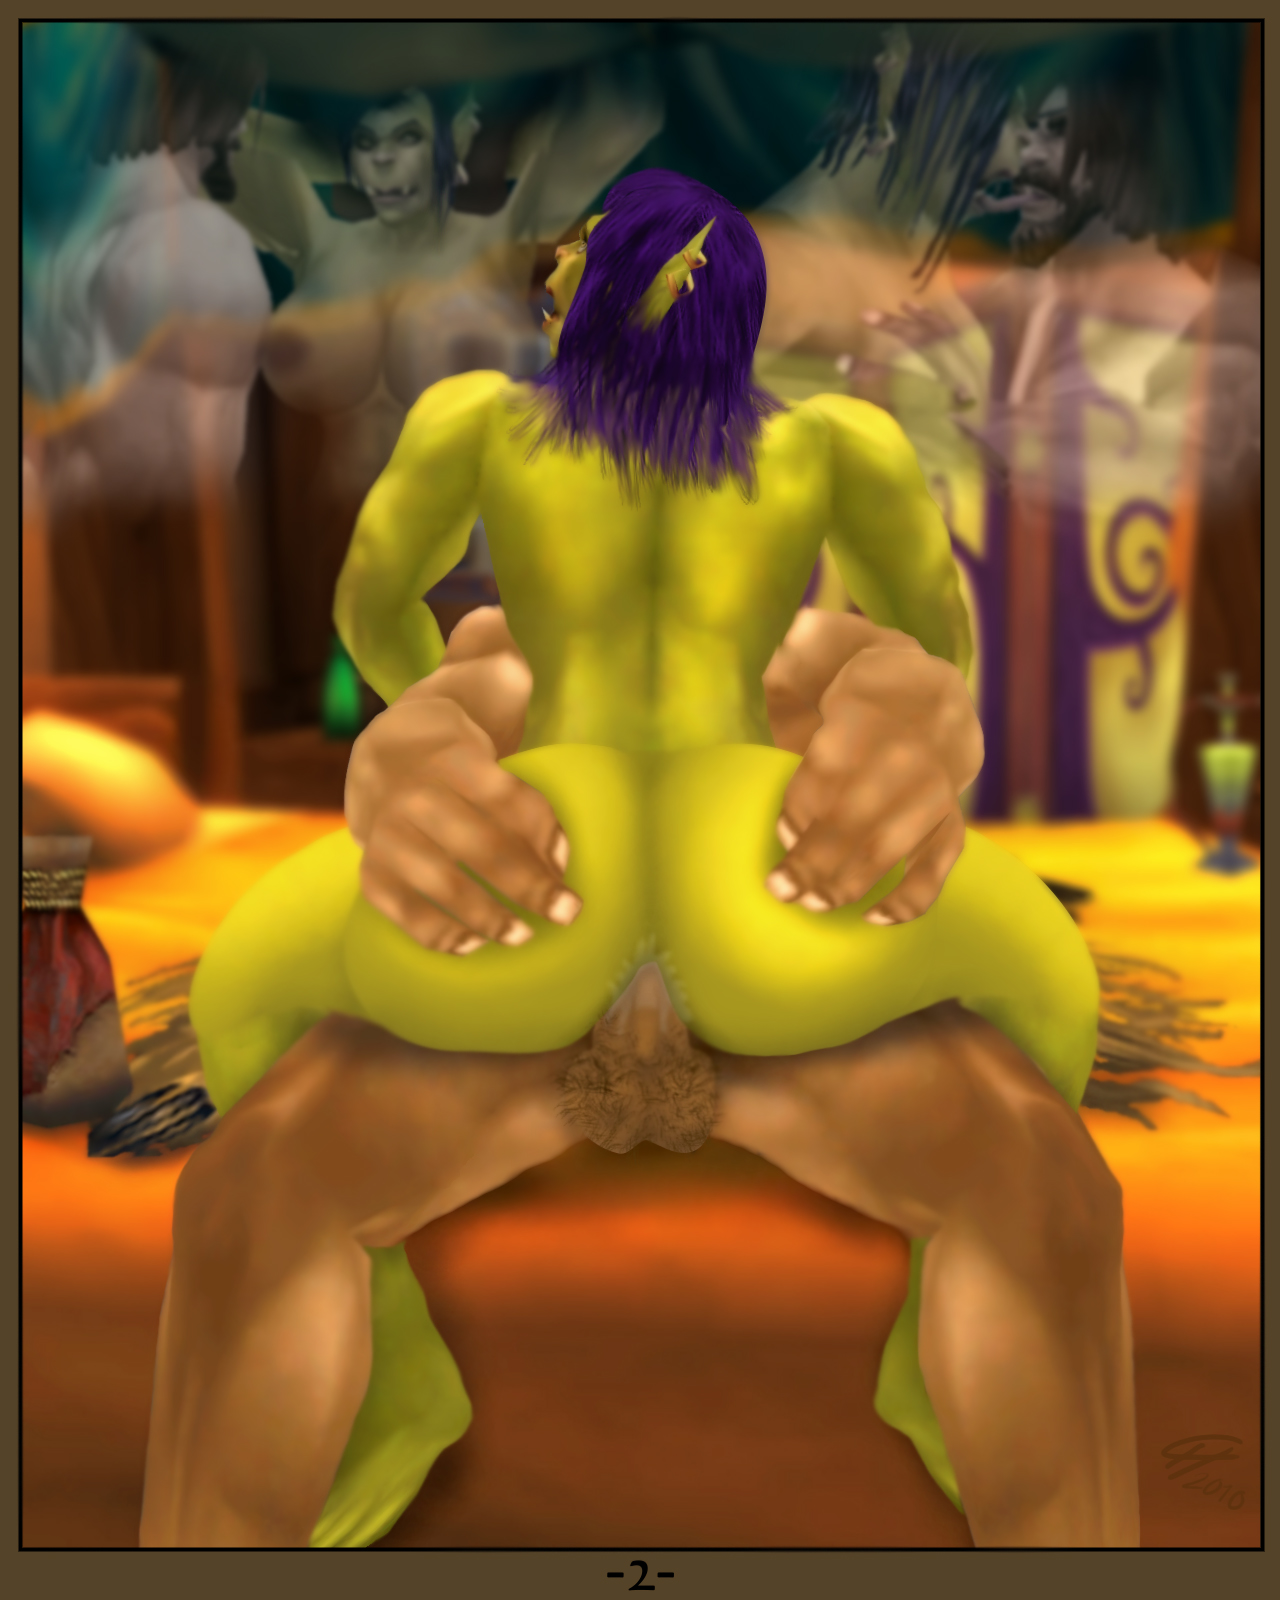 Orc fuck nightelf wow nude pic